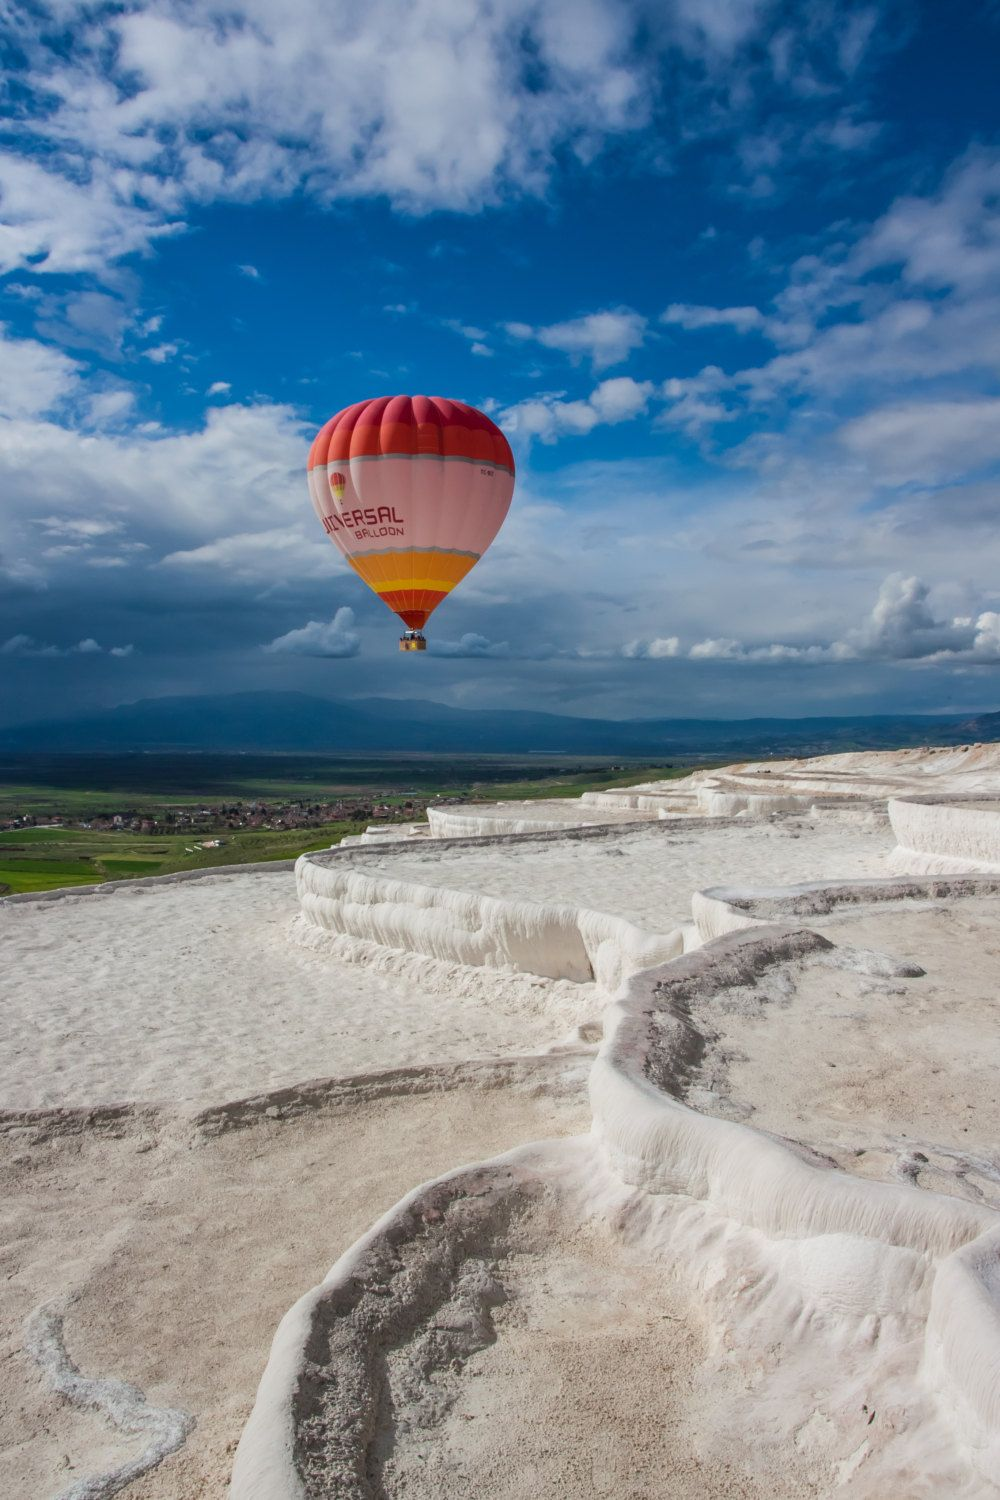 Good morning from Pamukkale! Do you know that they have